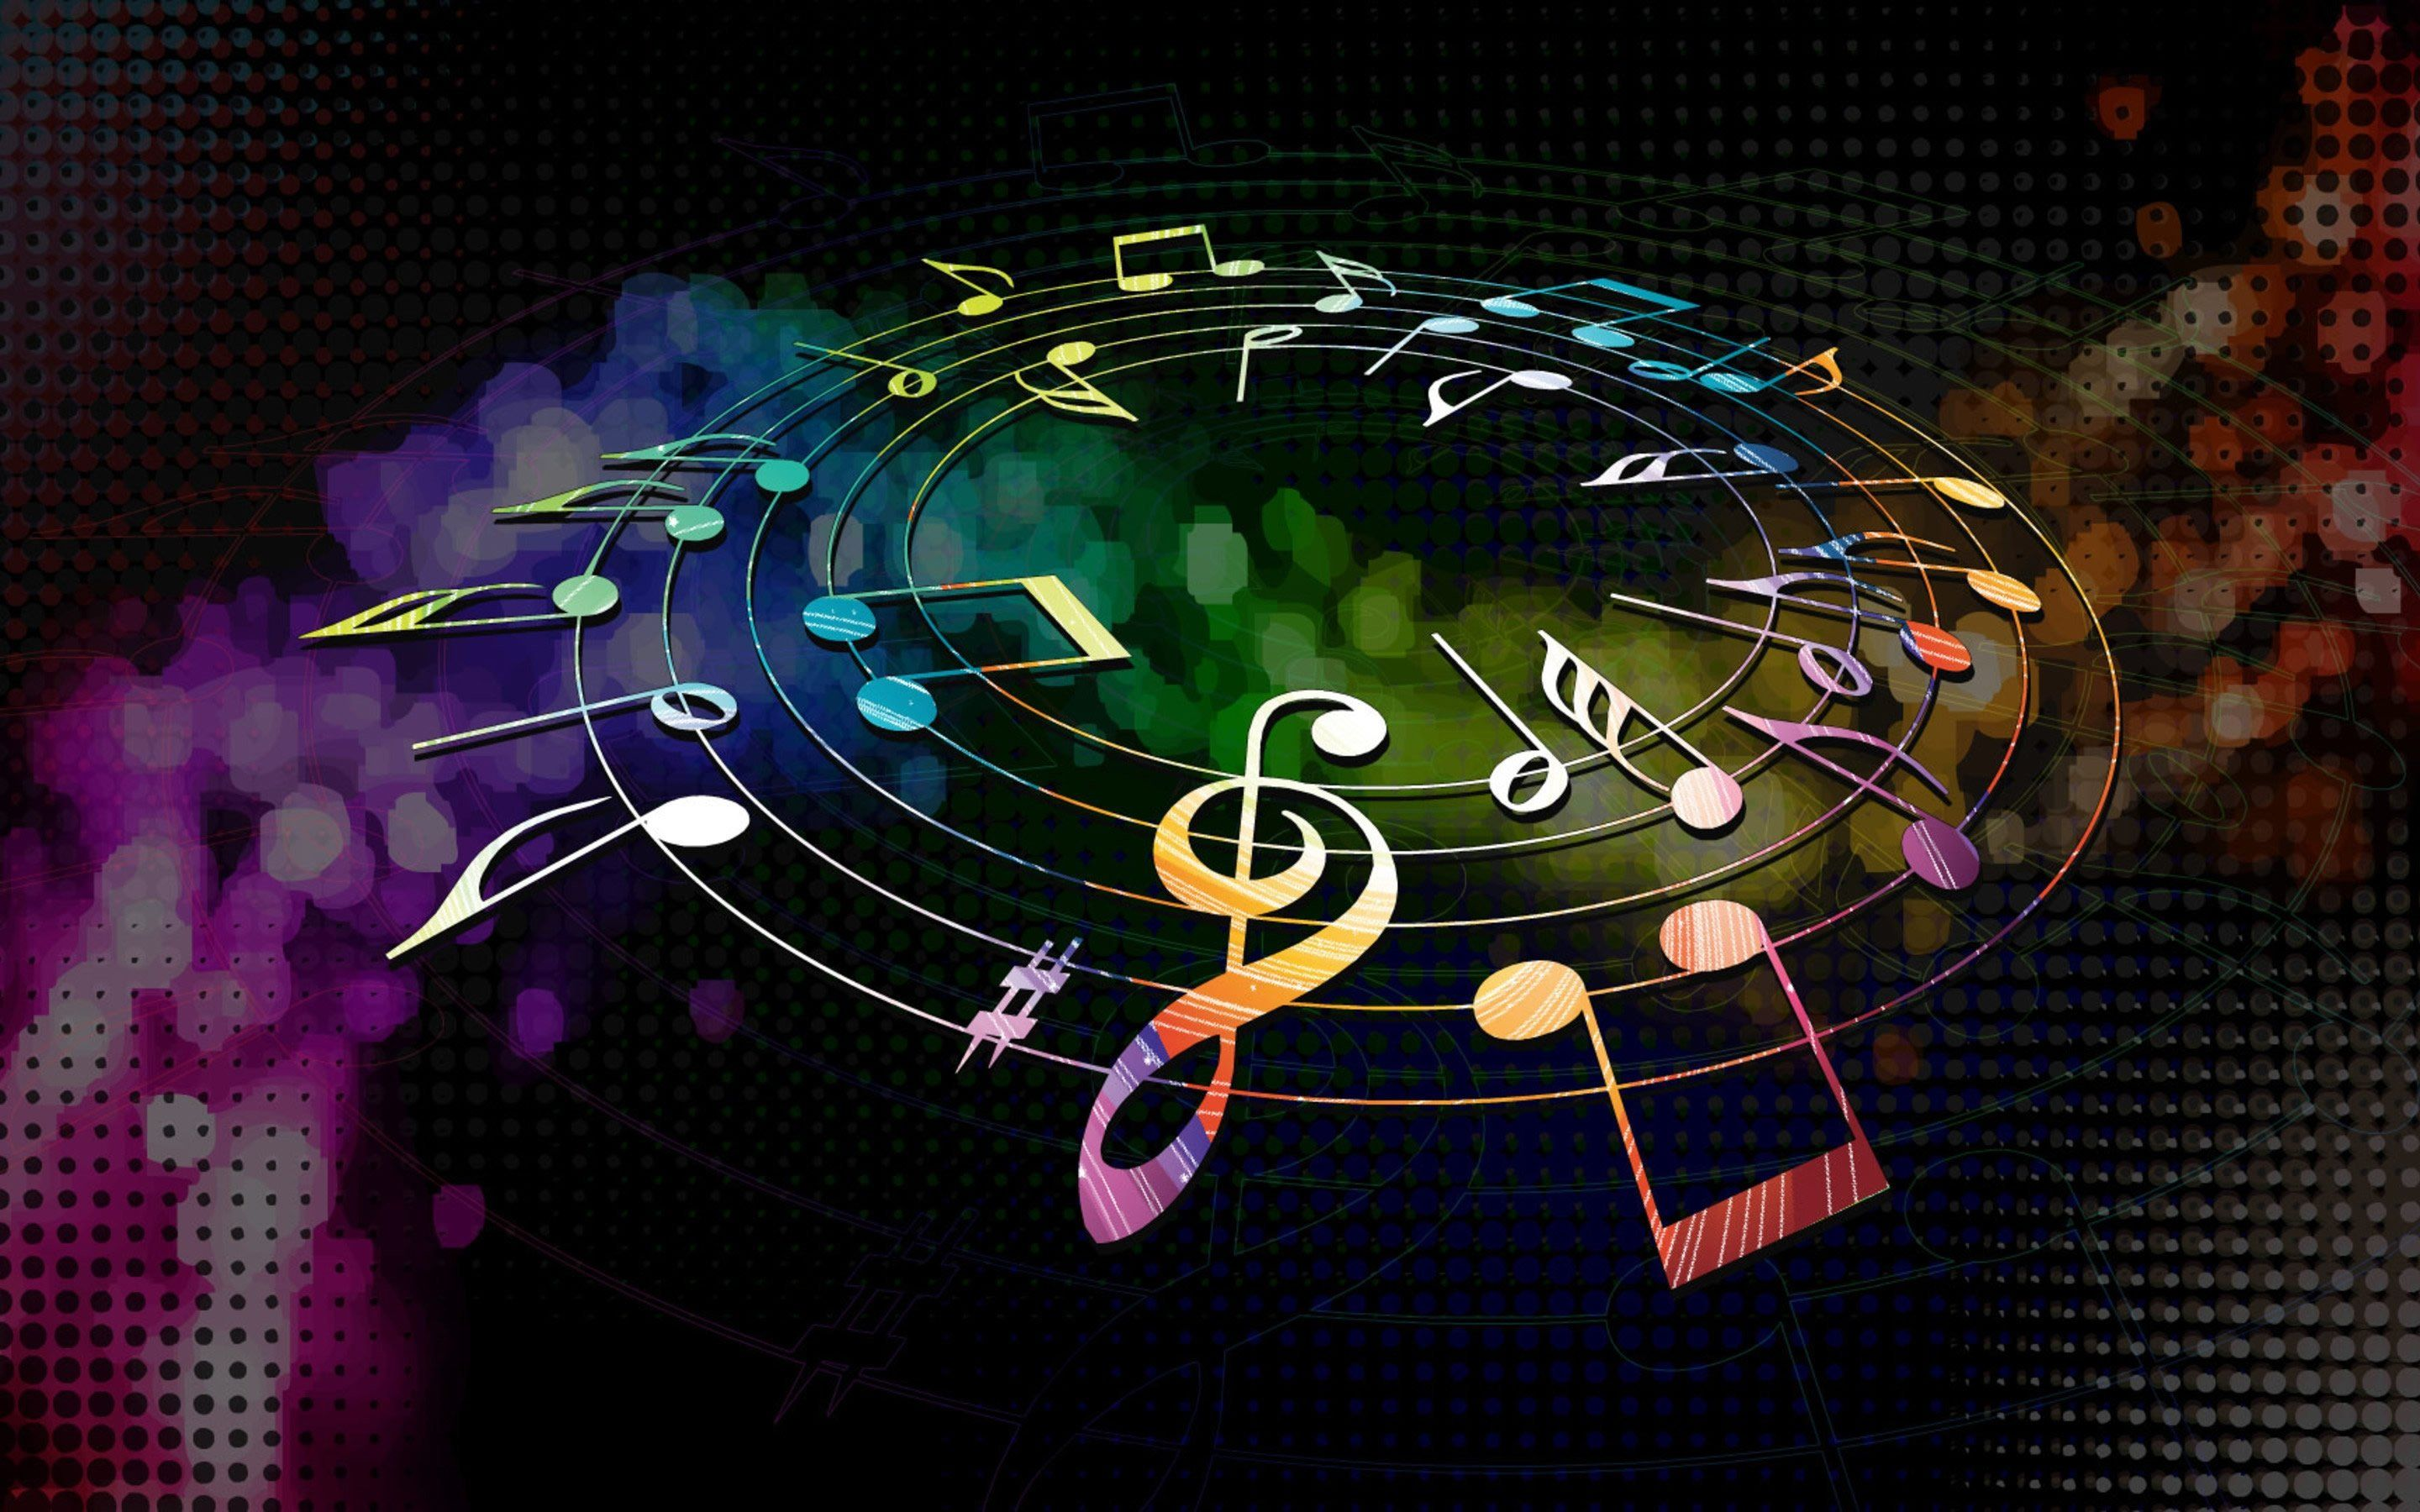 Colorful music notes wallpaper walldevil wallpapers 4k colorful music notes wallpaper walldevil voltagebd Image collections